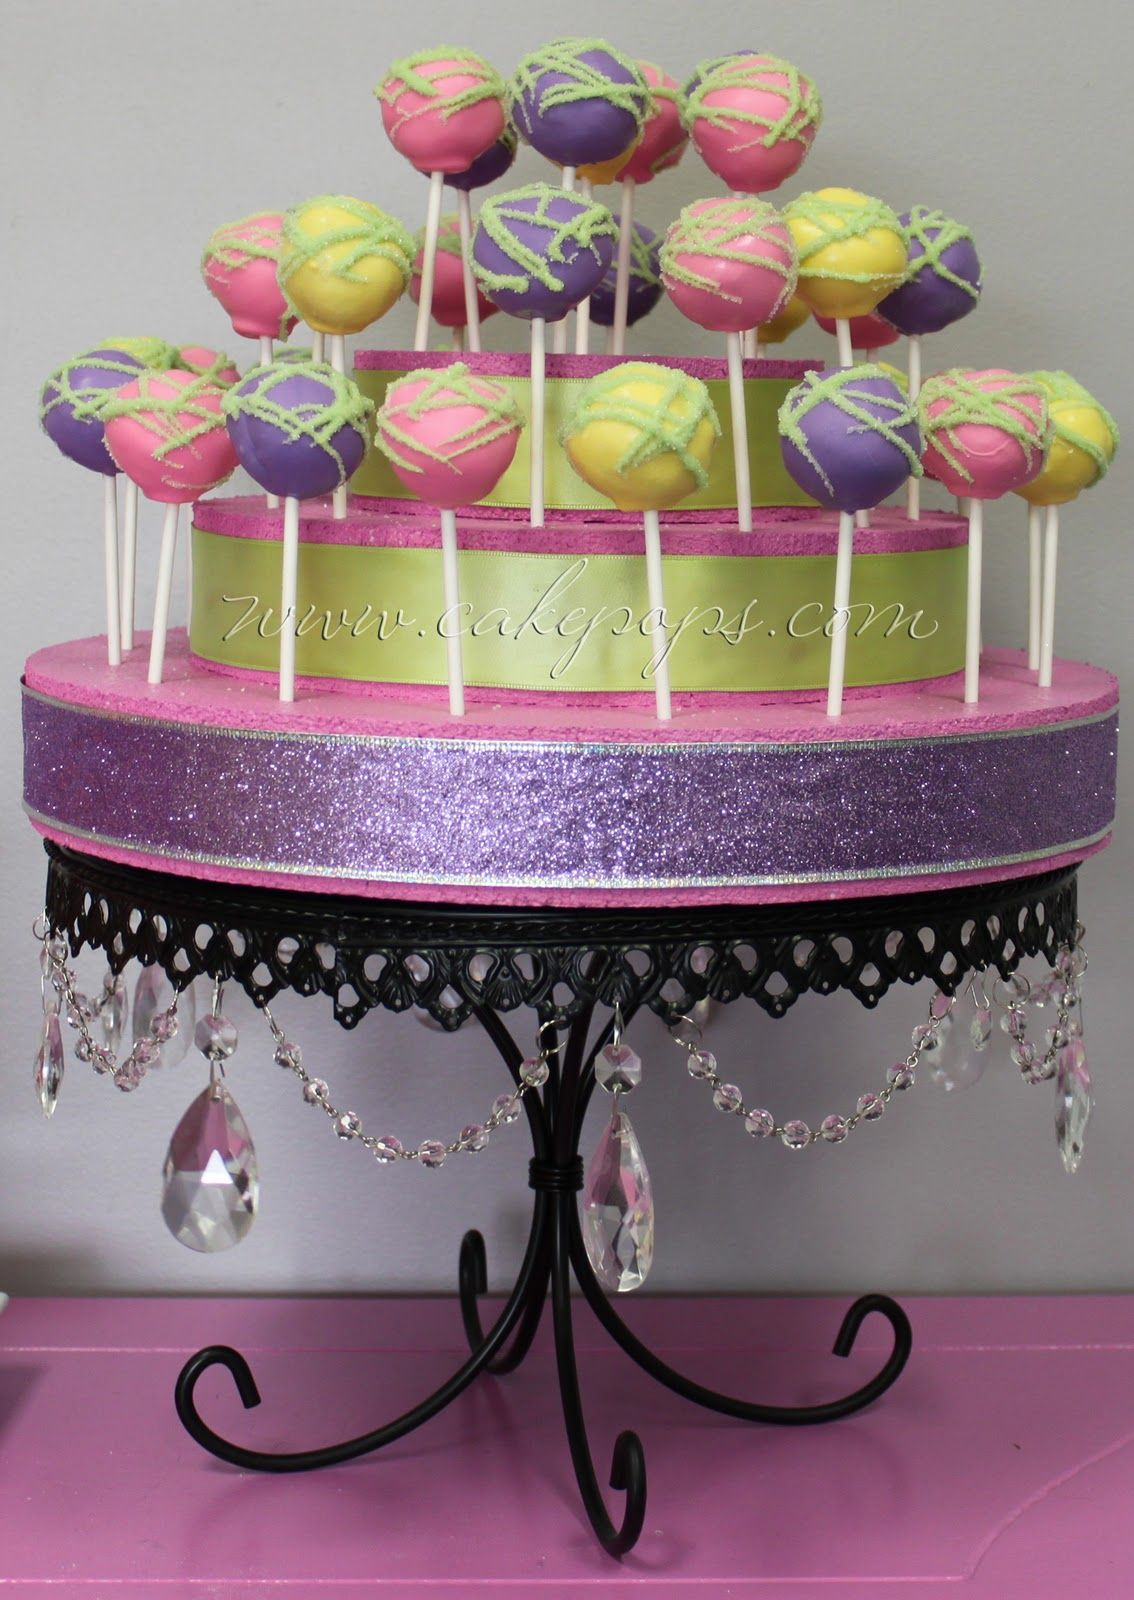 Candy S Cake Pops More Cake Pop Party Displays Cake